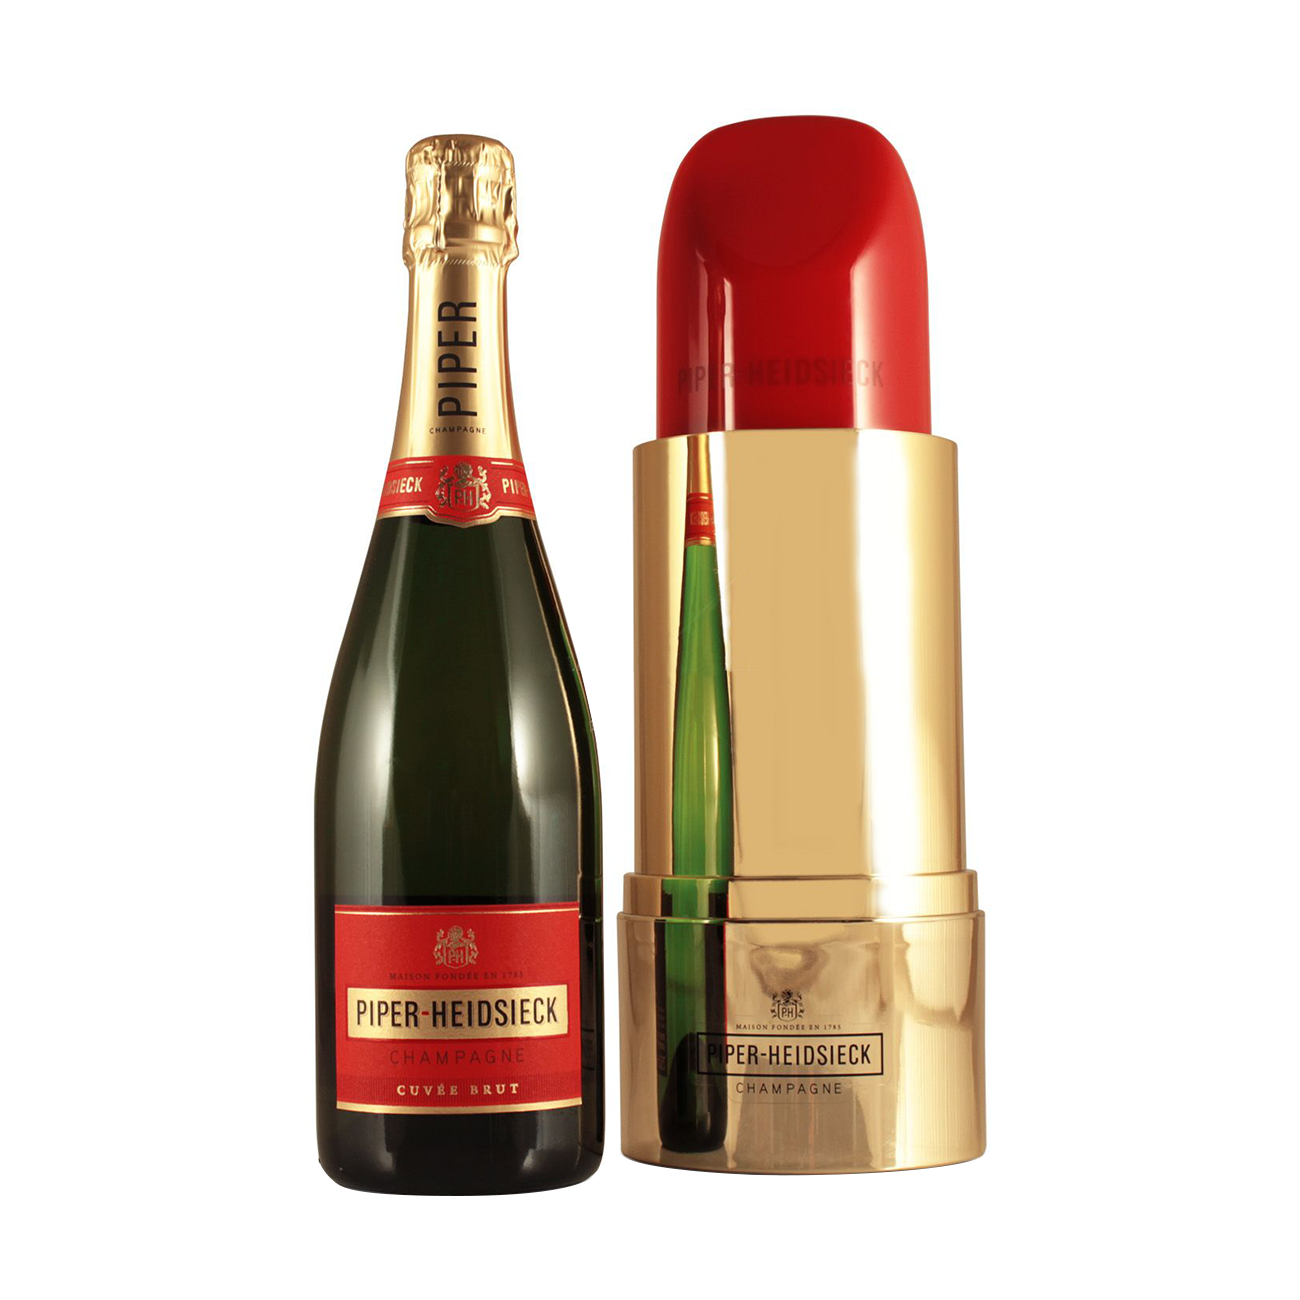 Sampanie, Sublime Champagne Demi-Sec 750ml, Piper-Heidsieck